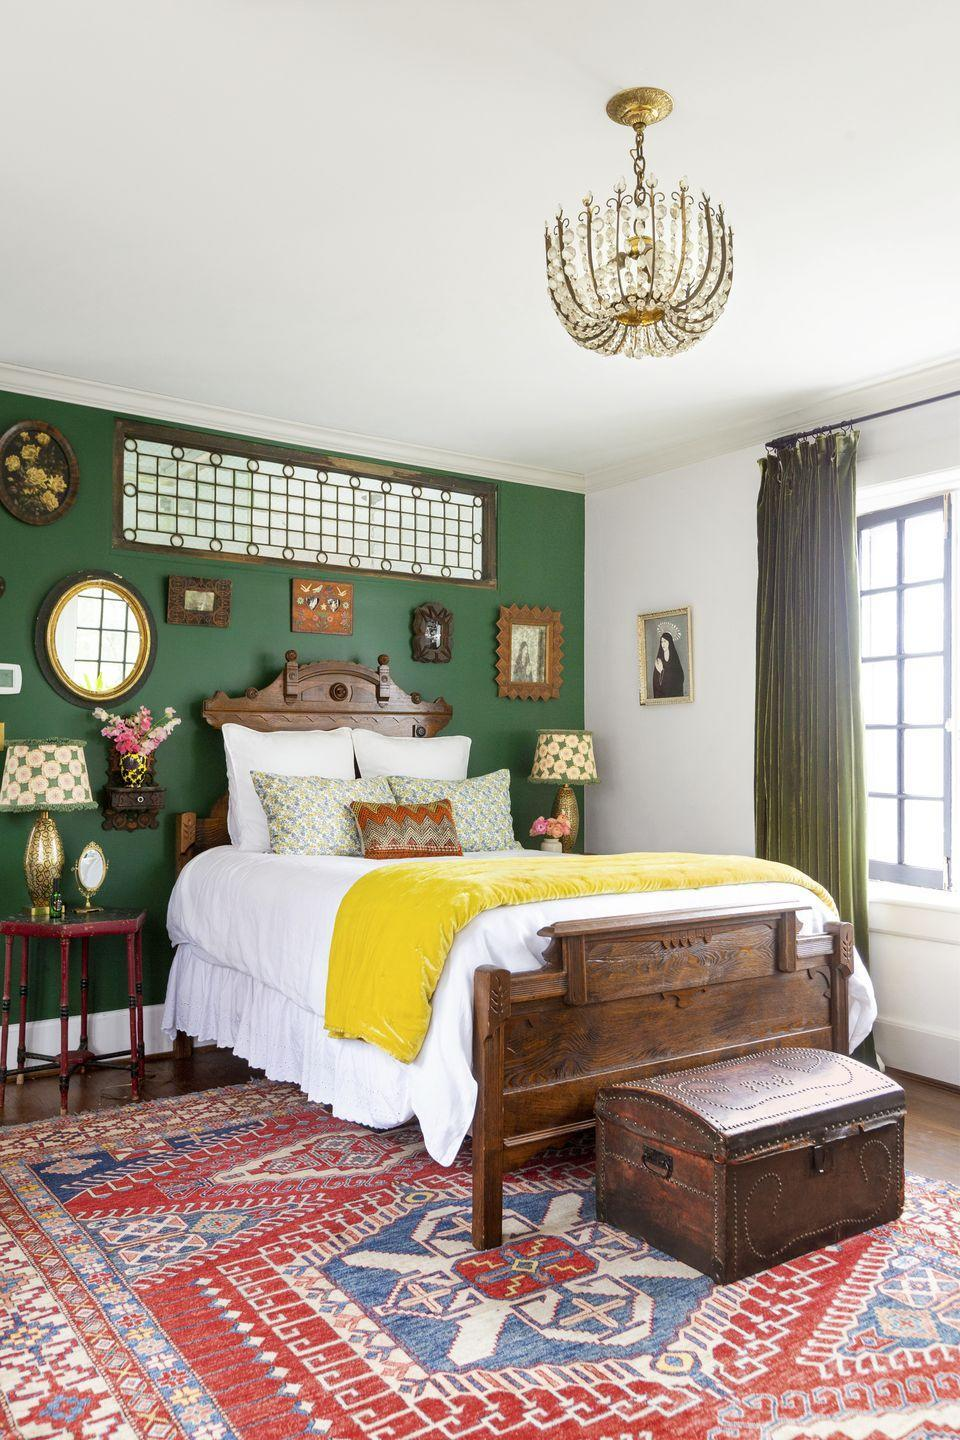 """<p>Don't be afraid to try a strong color, but use it for a single accent wall to provide impact without overwhelming. Here, in homeowner Jen Auerbach's Nashville bedroom, a rich green provides a deep backdrop to a mix of dark wood tones. To add additional light to the room, she installed a 1930s leaded glass window as a pass-through window on the wall separating the bedroom and bath. </p><p><strong>Get the Look: <br></strong>Accent Wall Paint Color: <a href=""""https://www.sherwin-williams.com/homeowners/color/find-and-explore-colors/paint-colors-by-family/SW6454-shamrock"""" rel=""""nofollow noopener"""" target=""""_blank"""" data-ylk=""""slk:Shamrock by Sherwin-Williams"""" class=""""link rapid-noclick-resp"""">Shamrock by Sherwin-Williams</a></p>"""